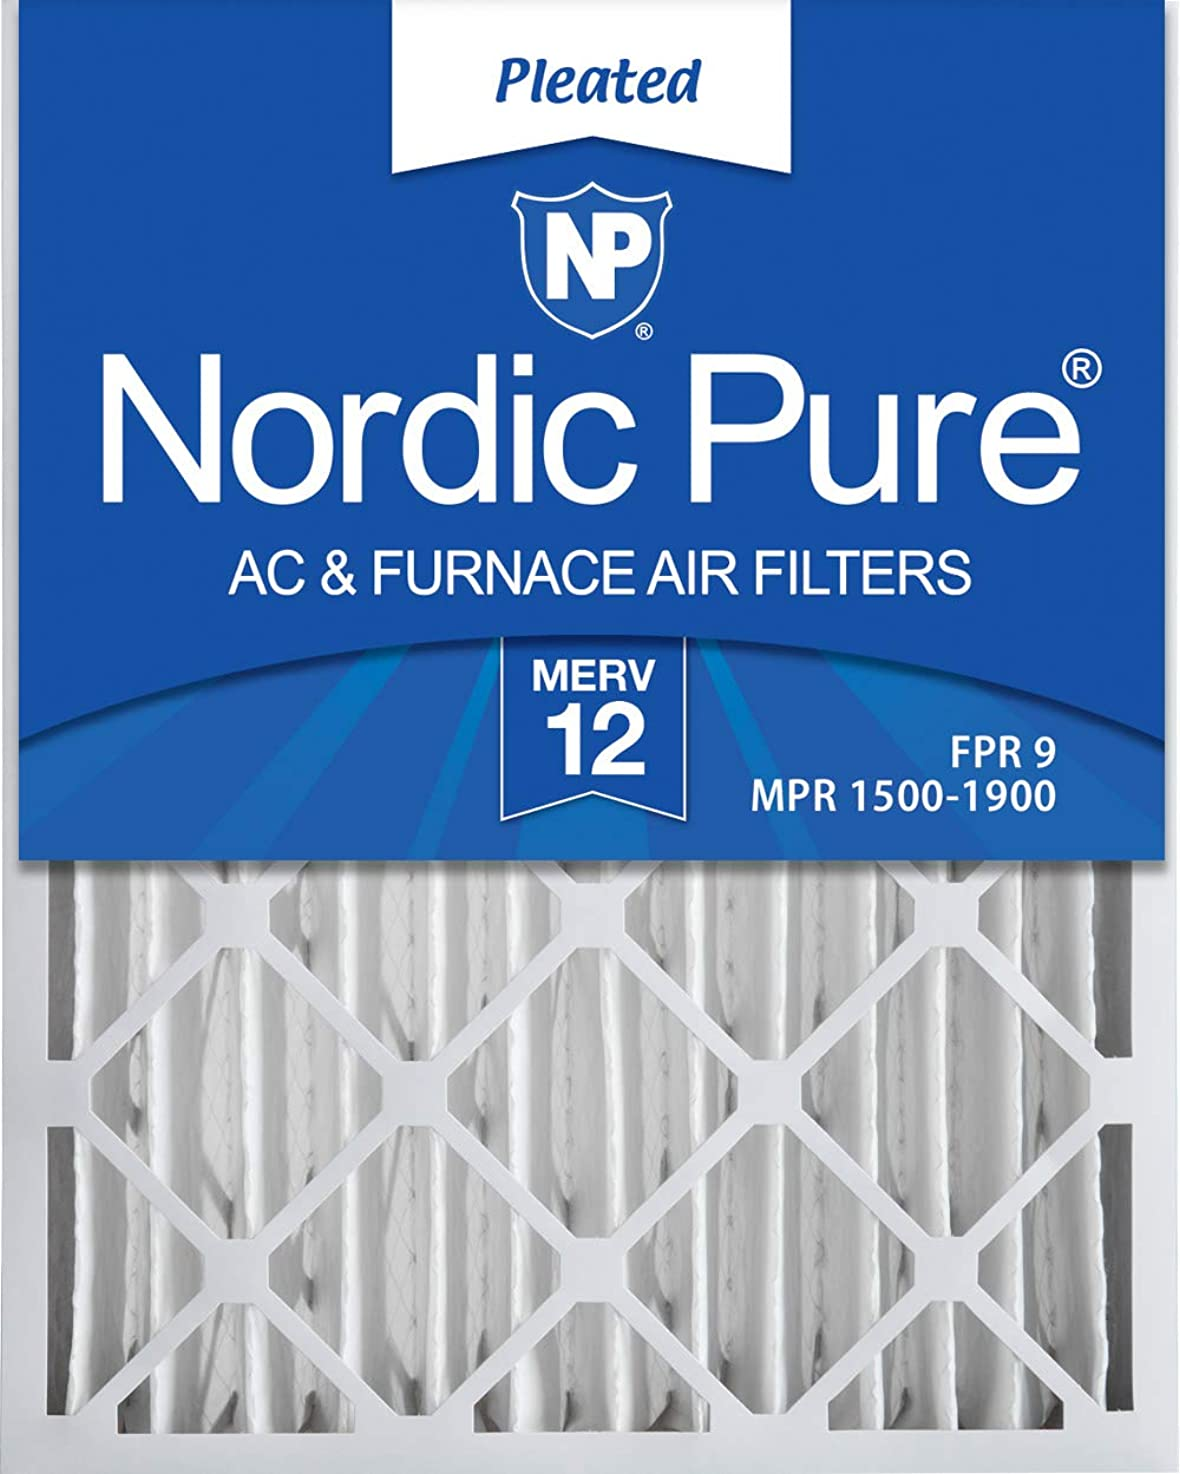 Nordic Pure 16x25x4M12-2 MERV 12 Pleated AC Furnace Air Filters, 16x25x4, 2 Pack ermykebkfnwlc1